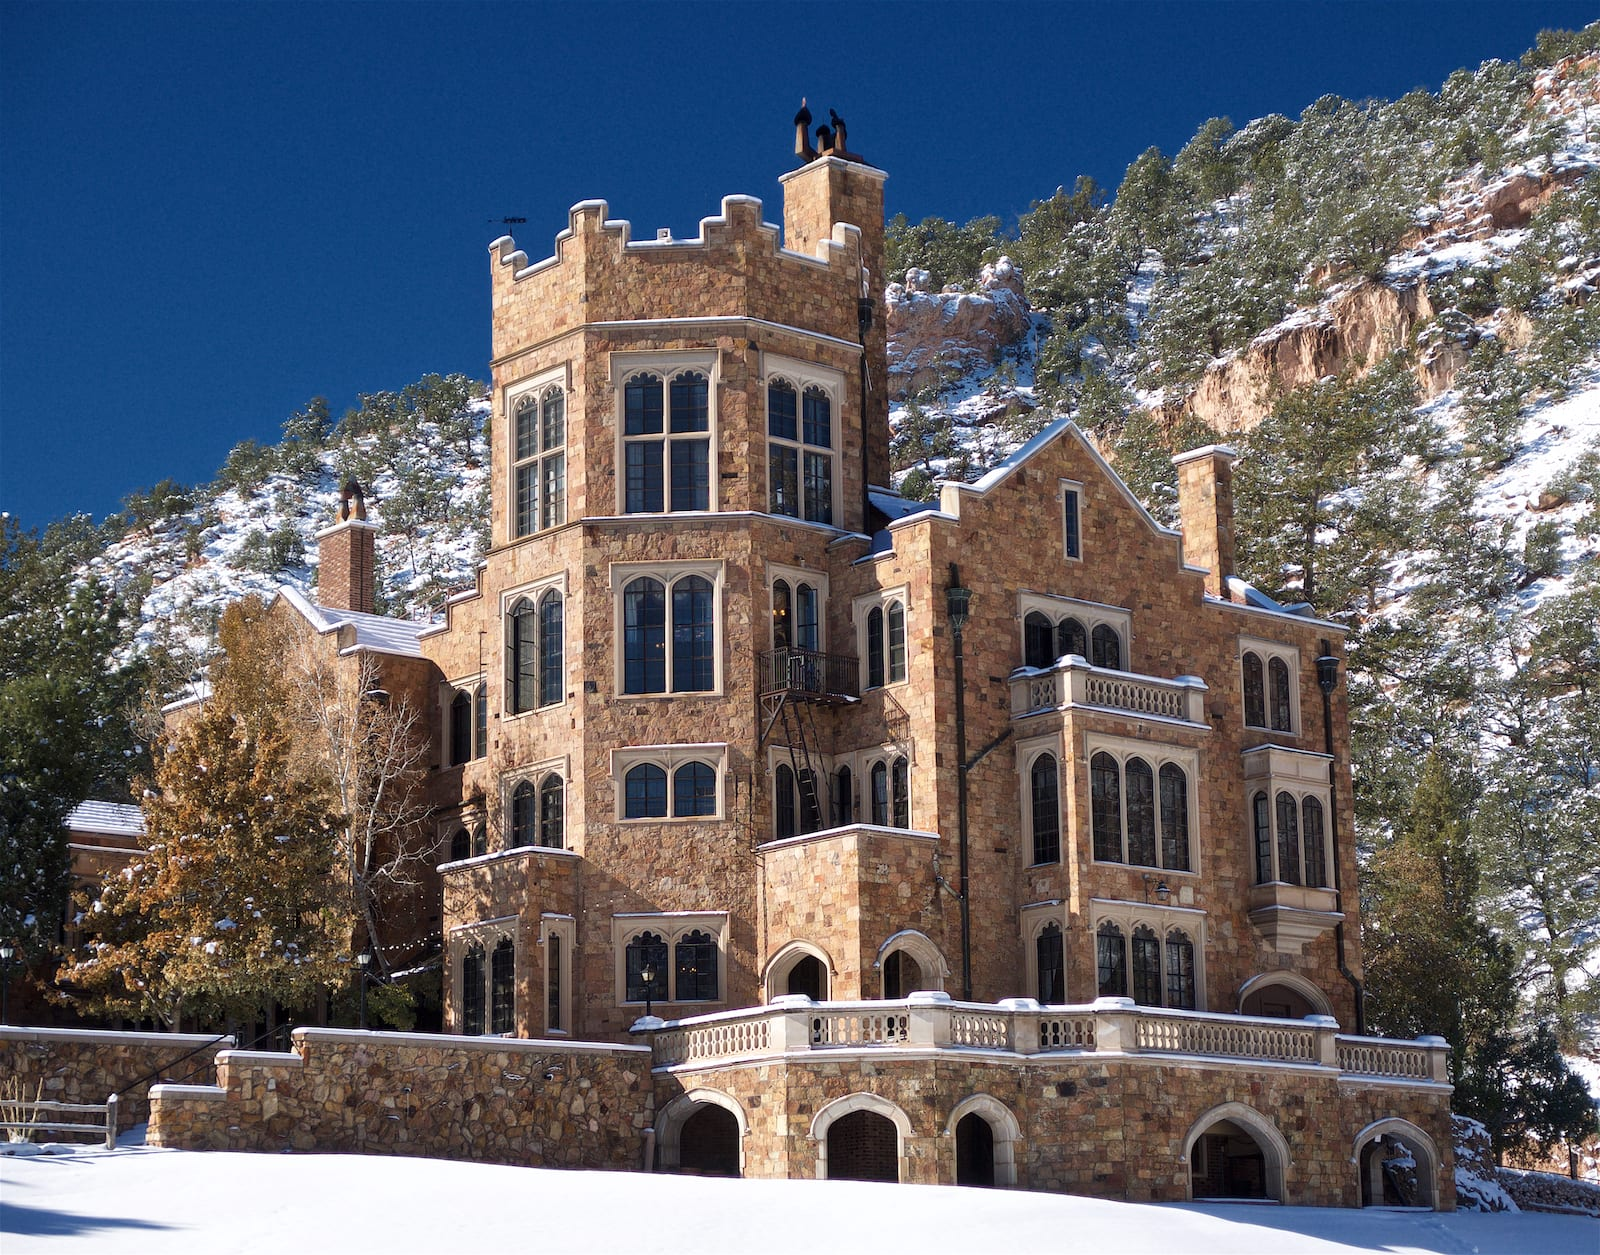 Glen Eyrie Castle in Colorado Springs